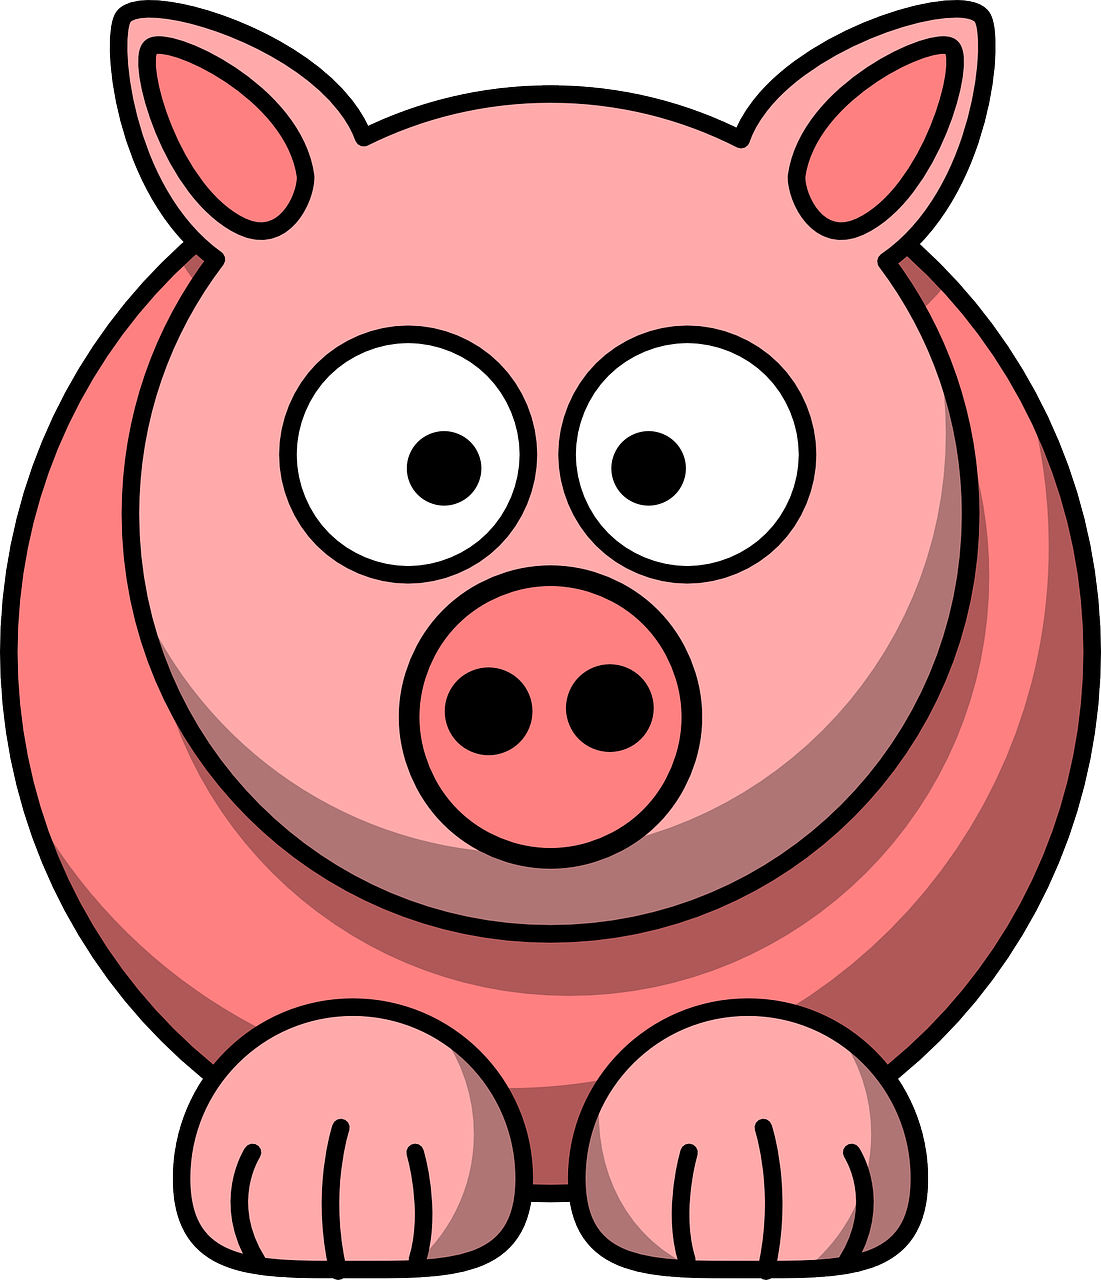 Scott Hollifield: The glowing threat of radioactive pigs